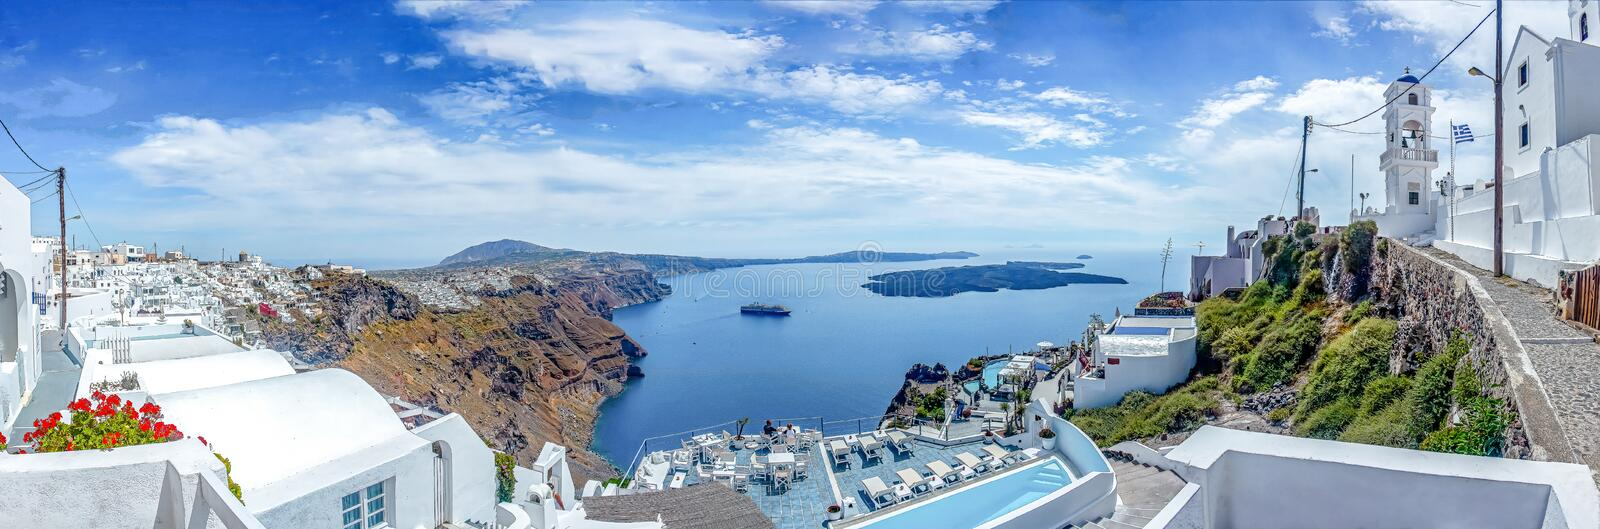 Panorama view from Imerofigli to Fira with the cruise ship waiting by the harbour, Santorini, Greece stock photography